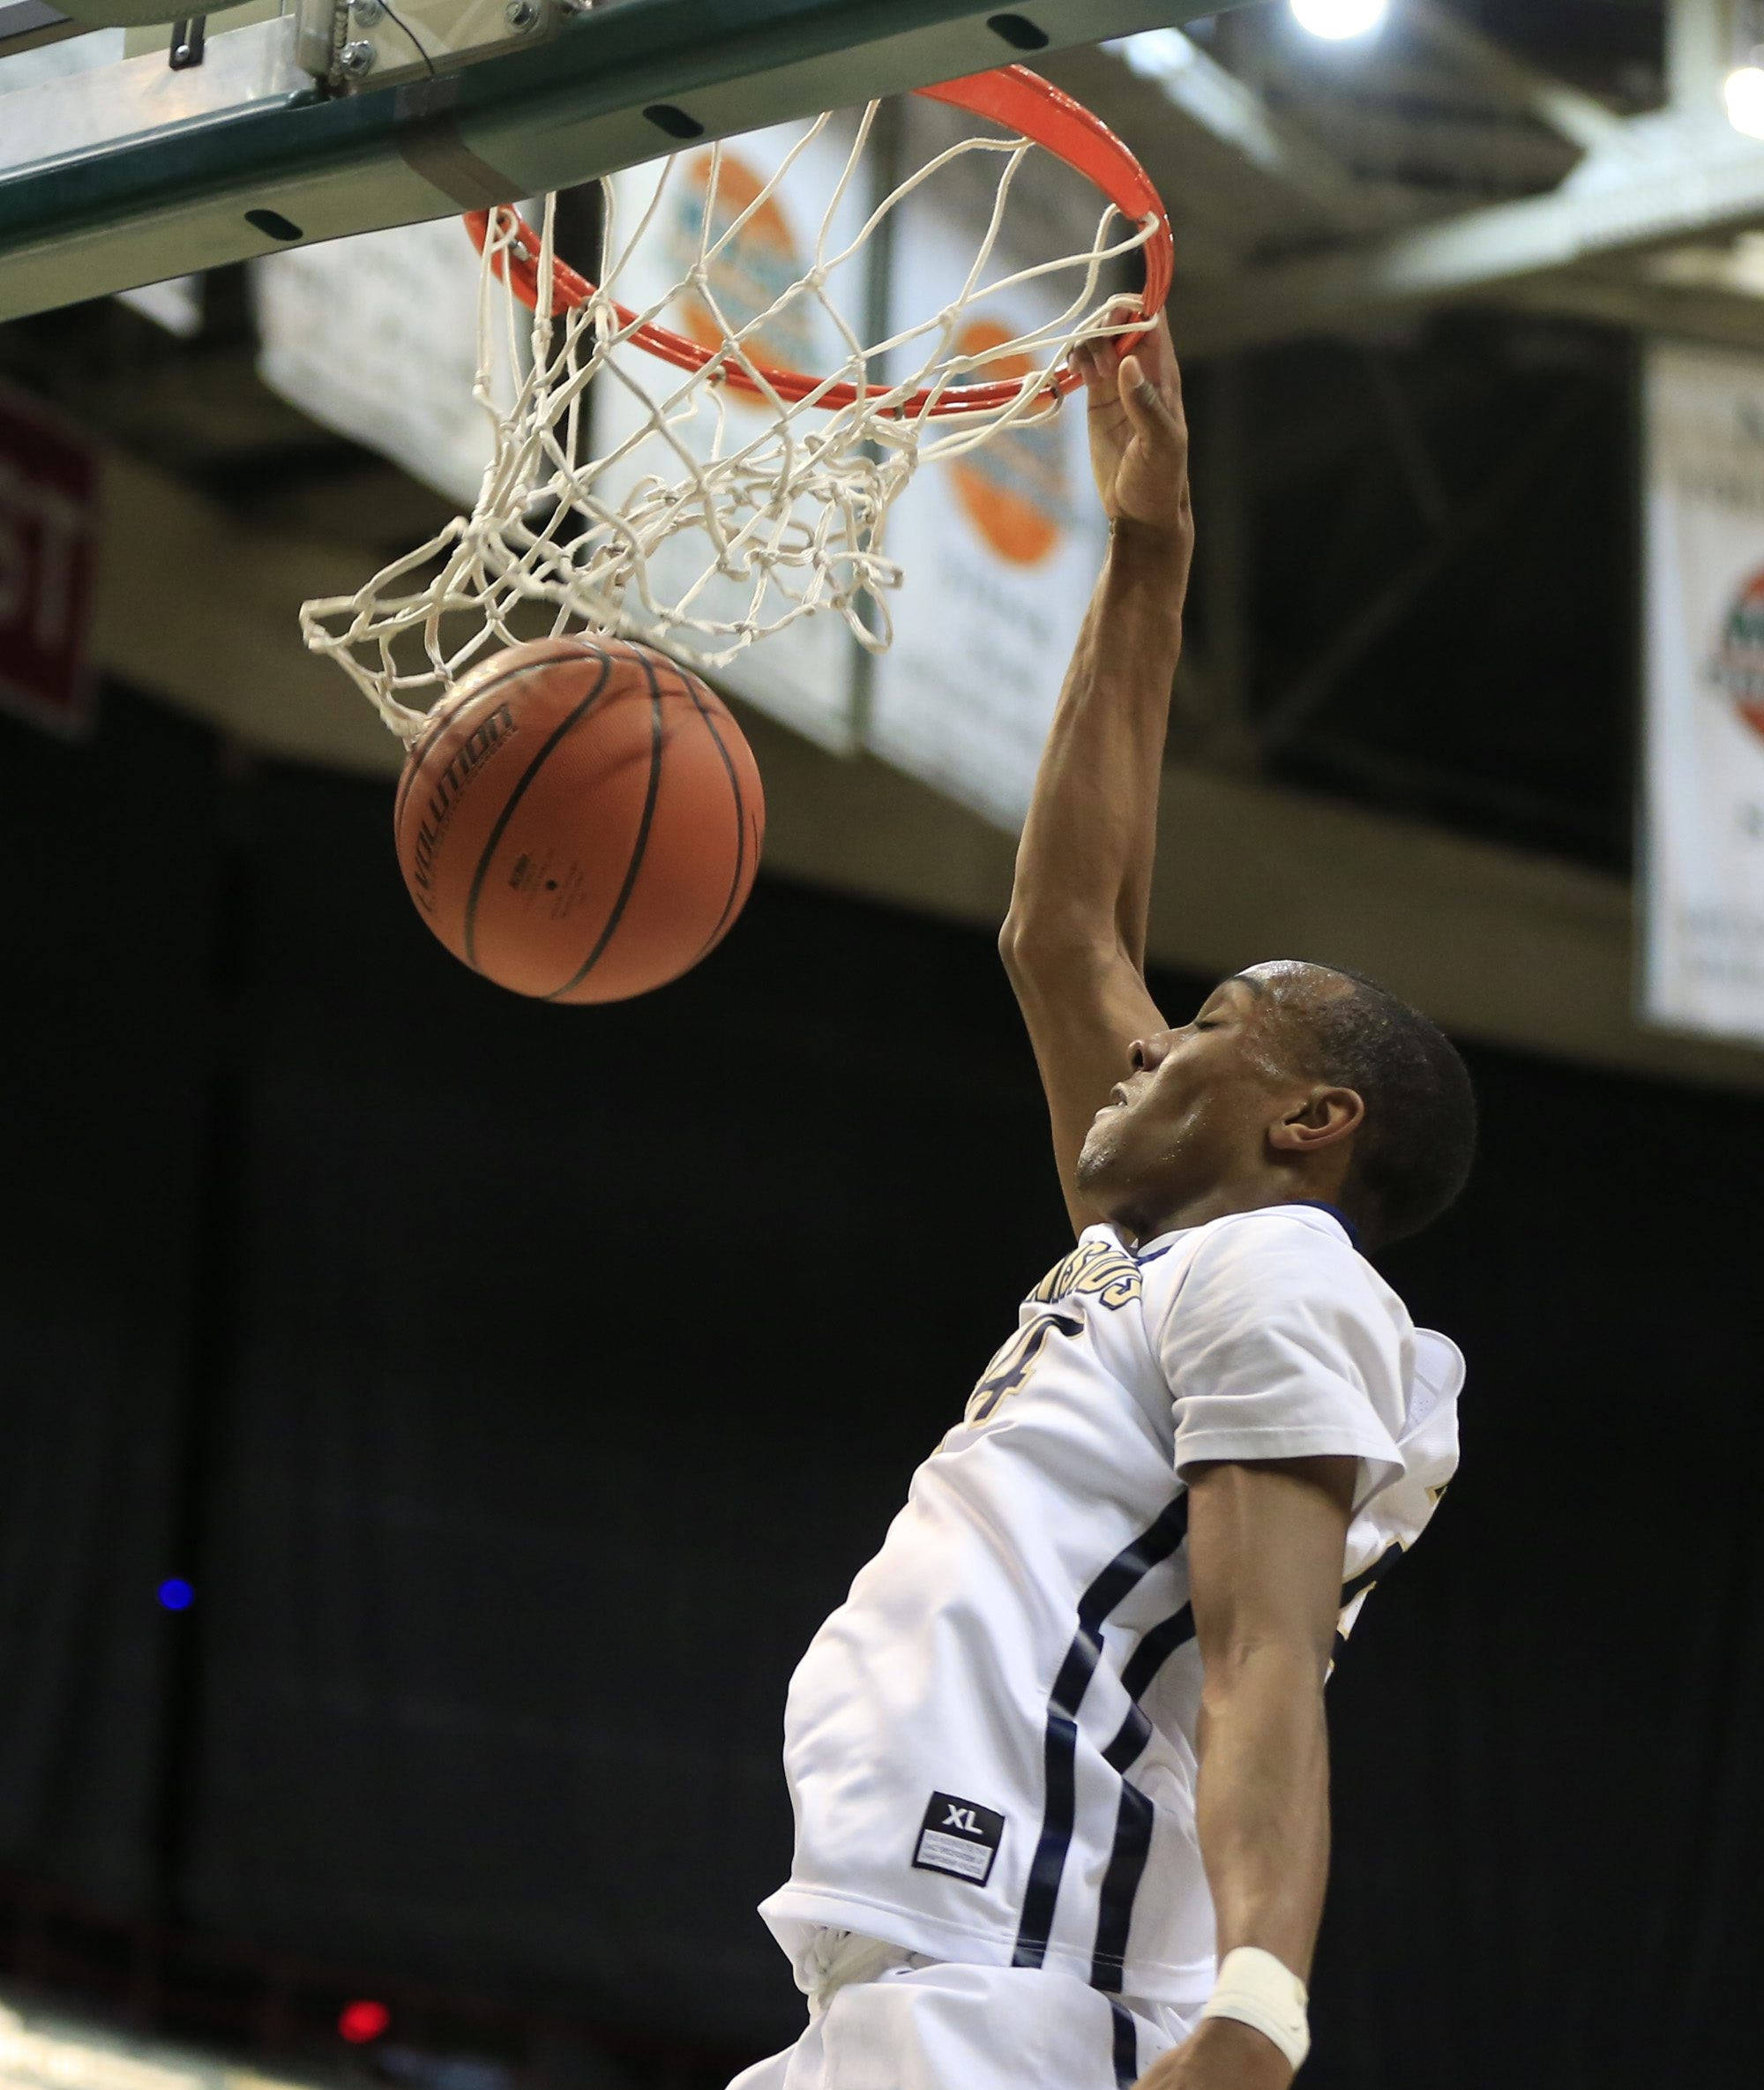 Canisius's Stafford Trueheart announced he will attend James Madison. (Harry Scull Jr./Buffalo News)